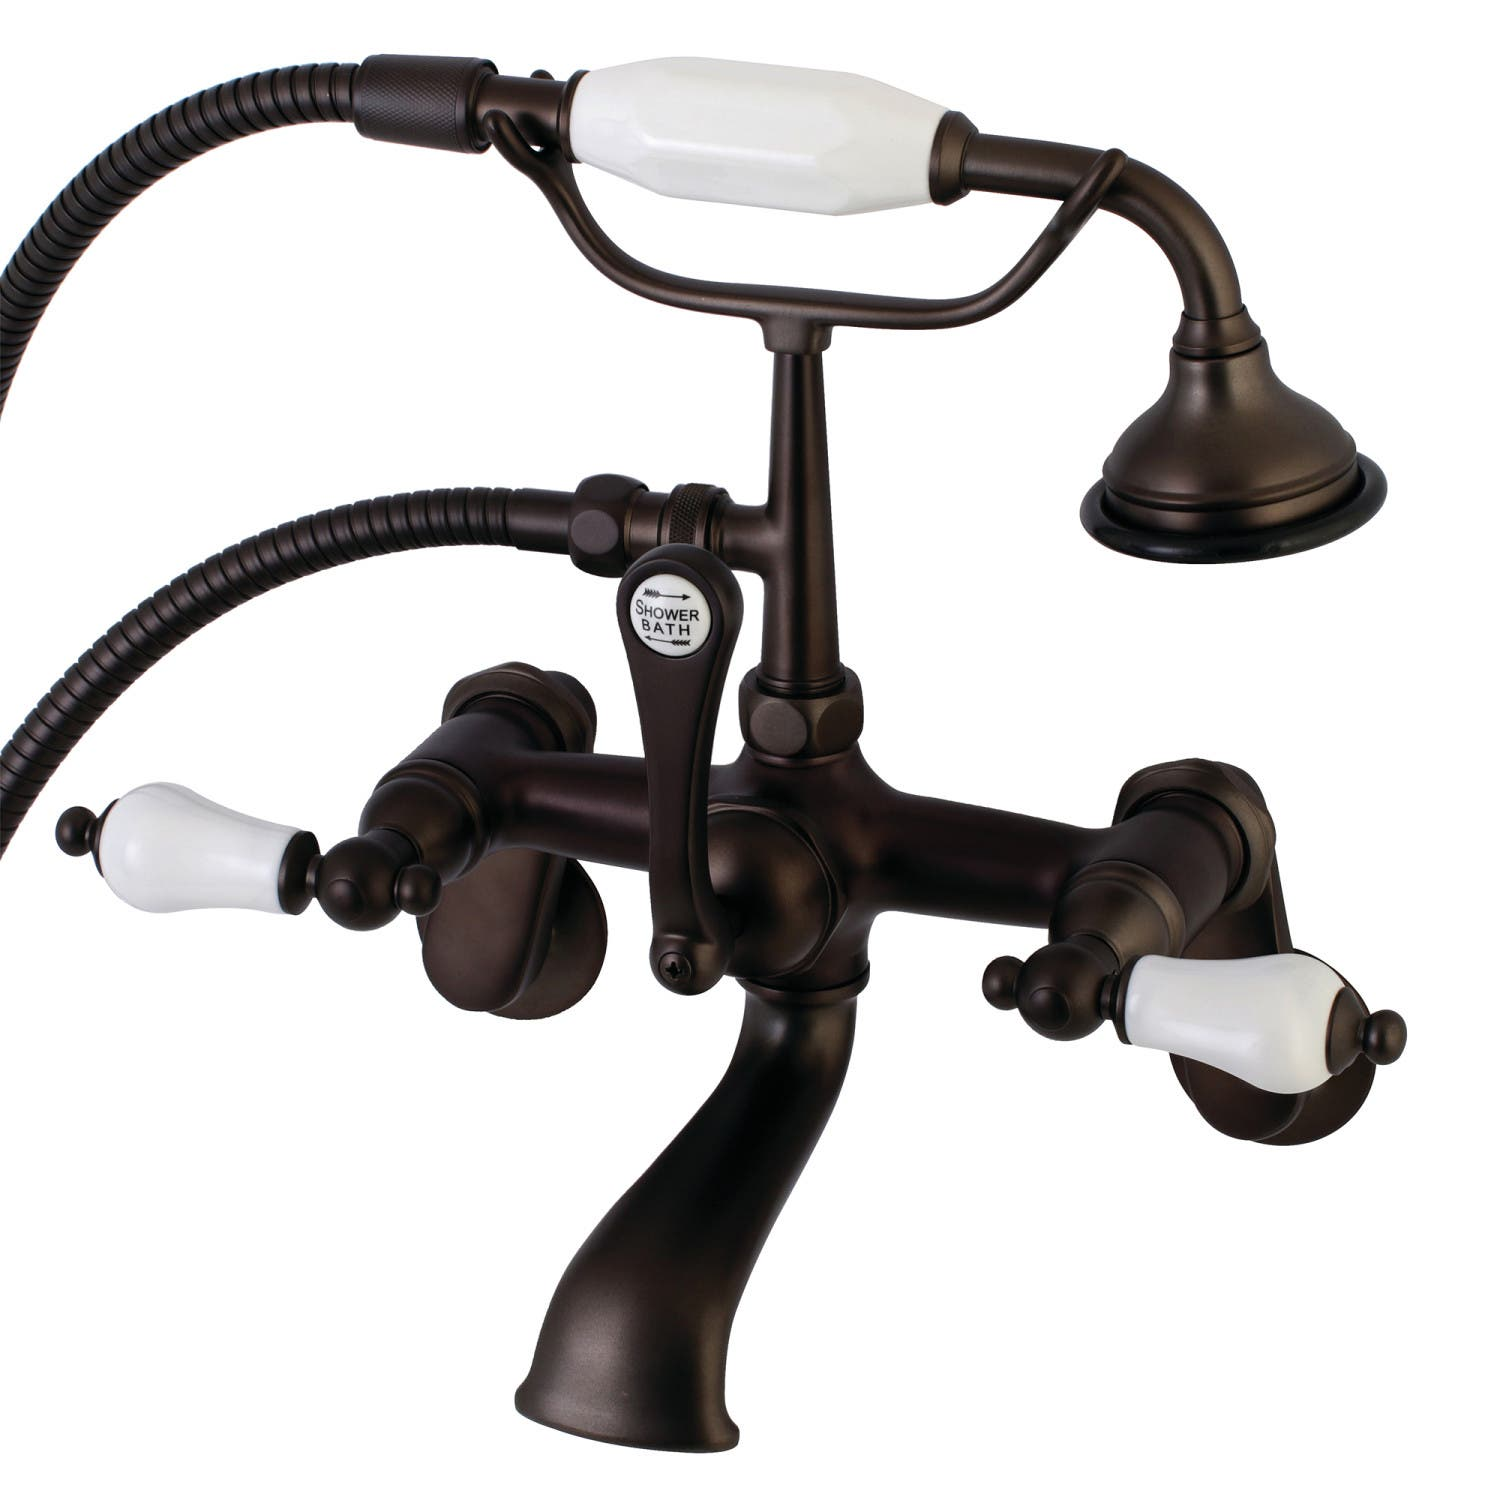 Aqua Vintage AE55T5 Clawfoot Tub Faucet with Hand Shower, Oil Rubbed ...